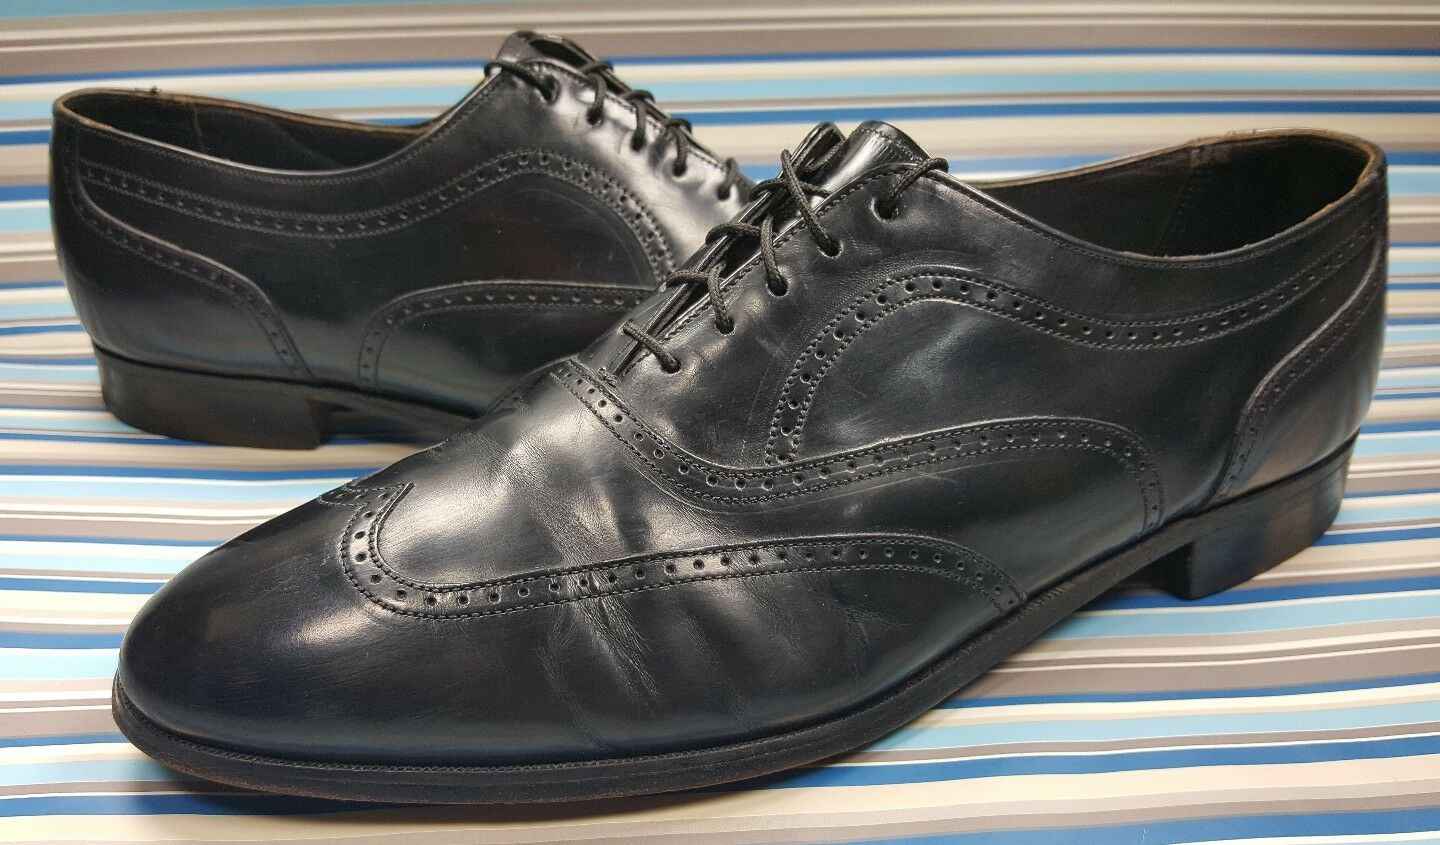 BOSTONIAN USA WING TIP OXFORD BLACK LEATHER CASUAL DRESS LACE UP MENS SHOES 12 M